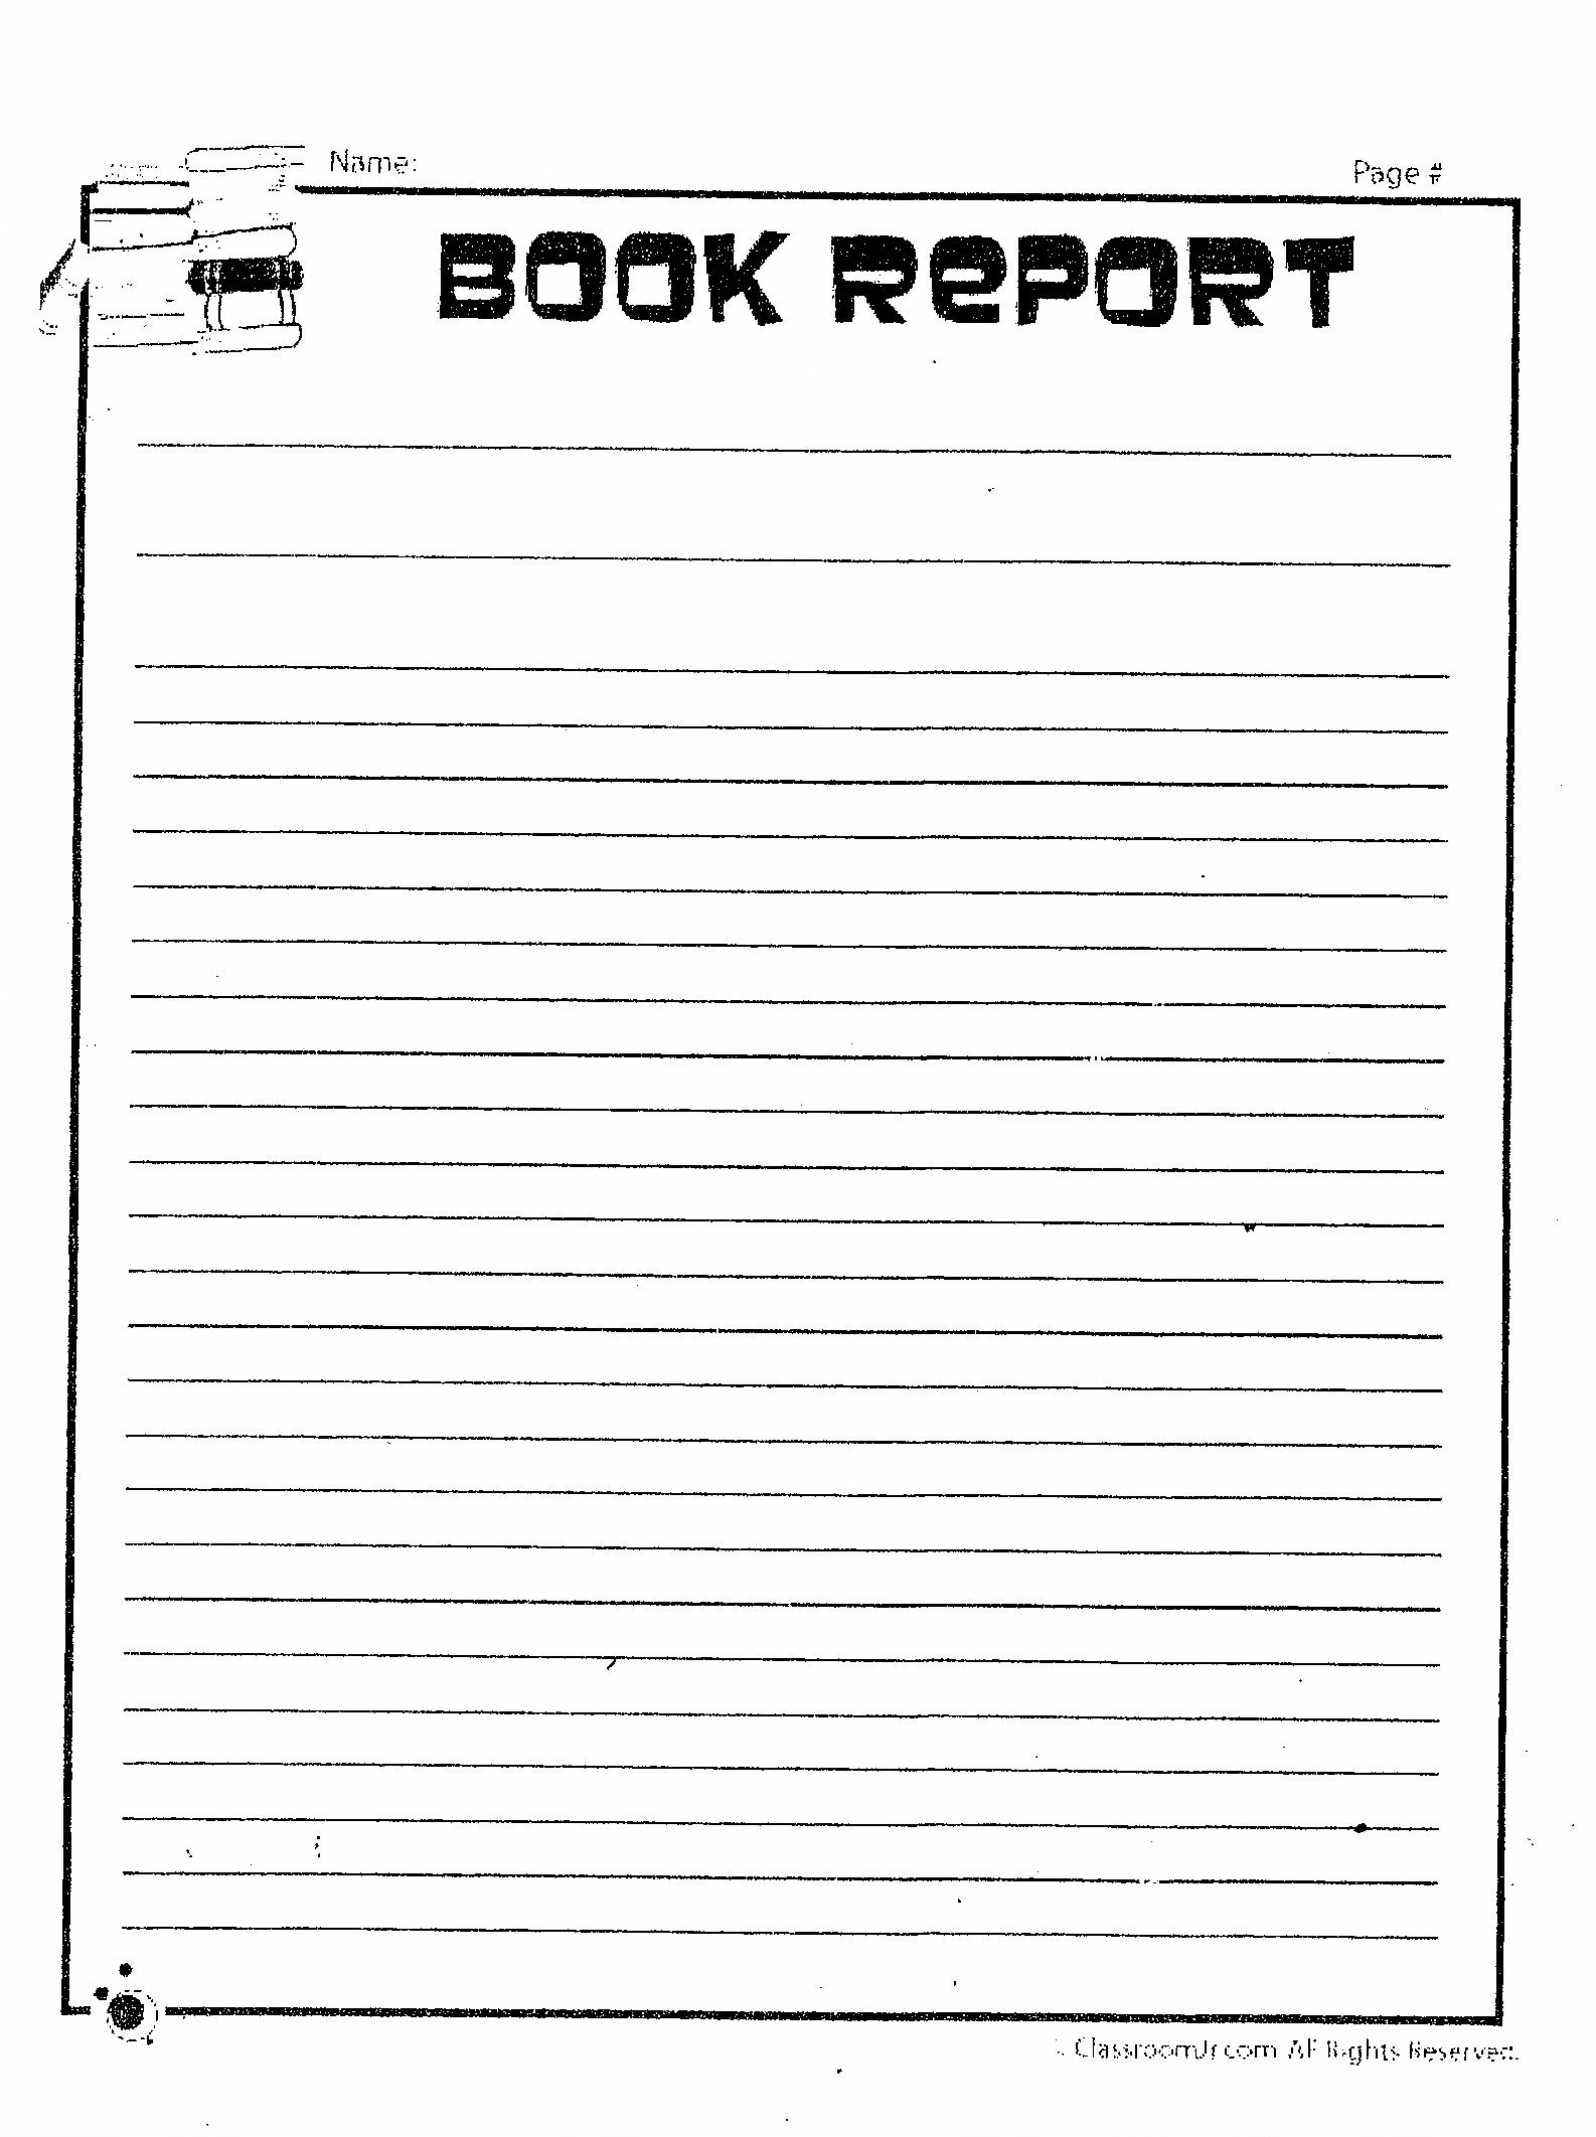 Printable Book Report Template